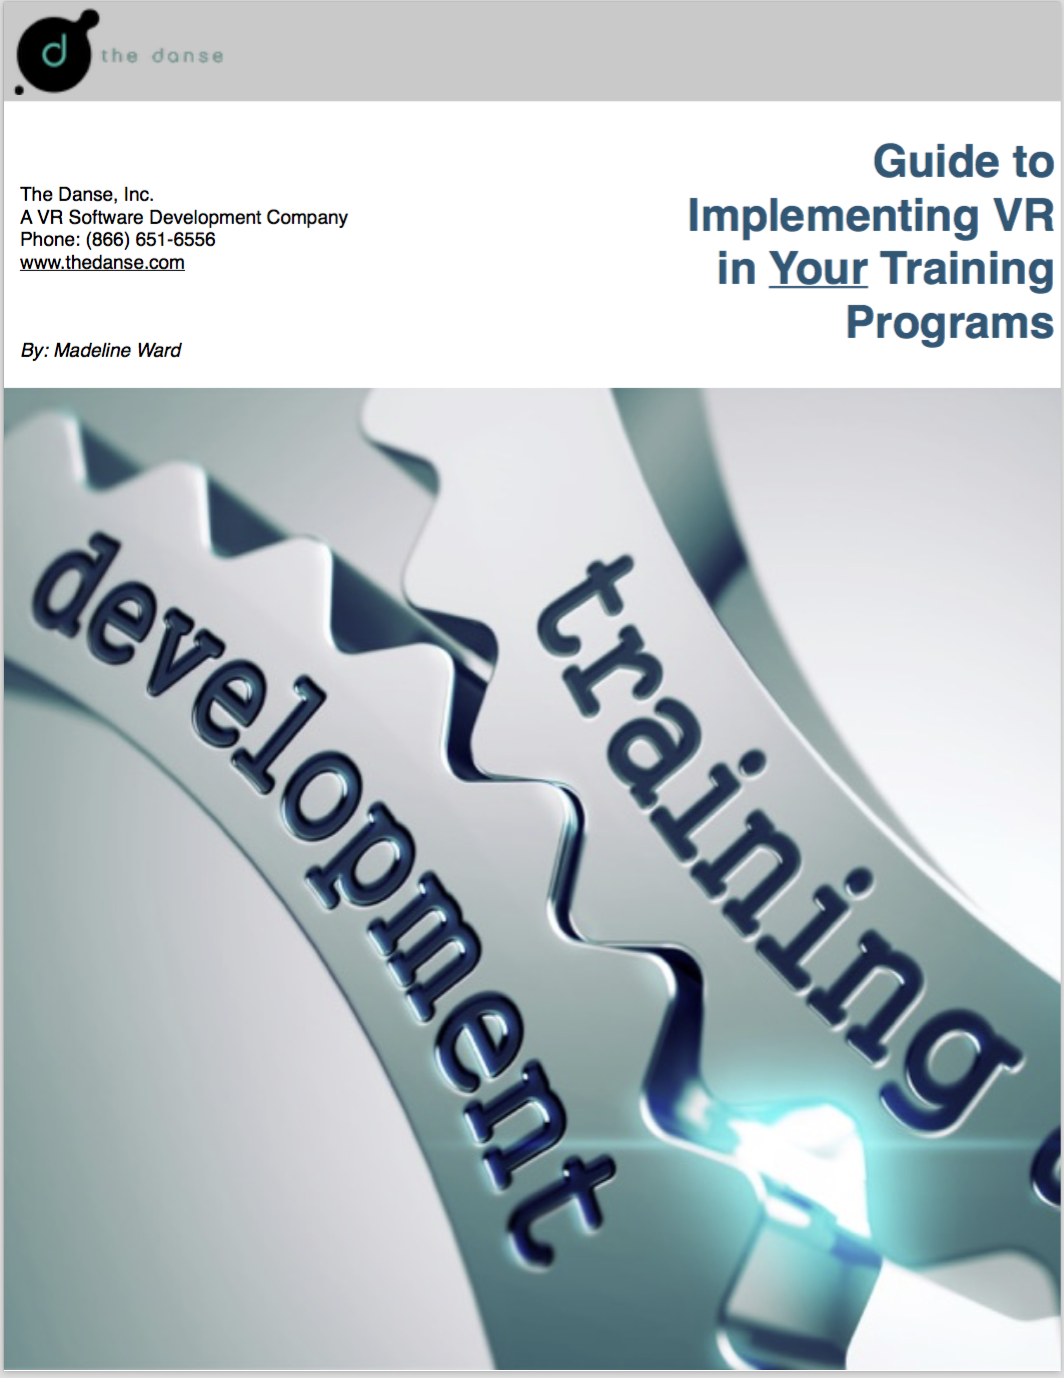 VRTrainingImplementationGuide.png